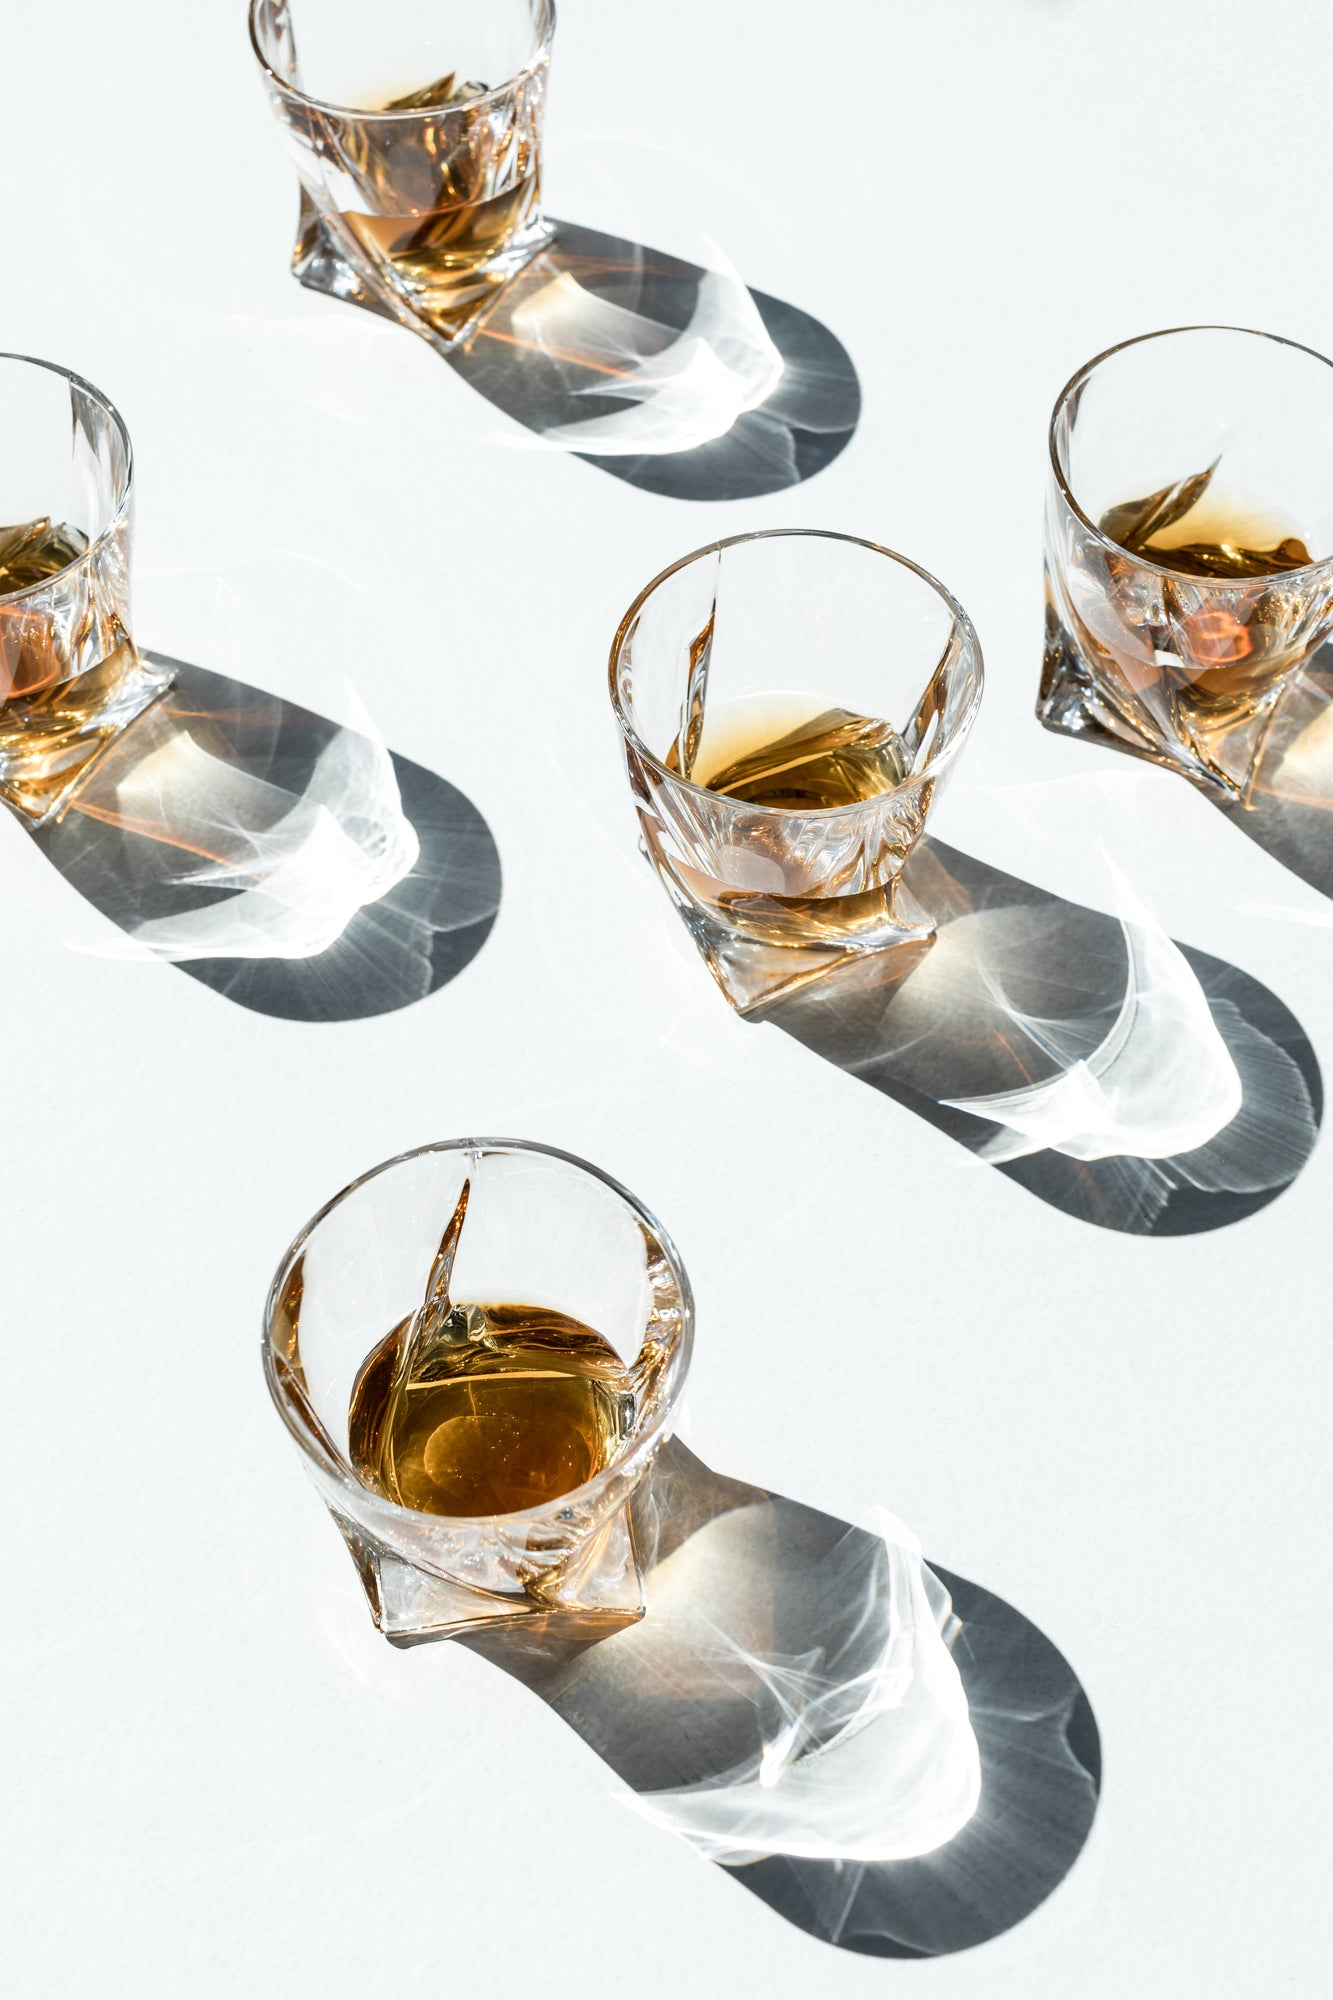 Millennials want spirits—with none of the alcohol. Here's how distilleries make it work.